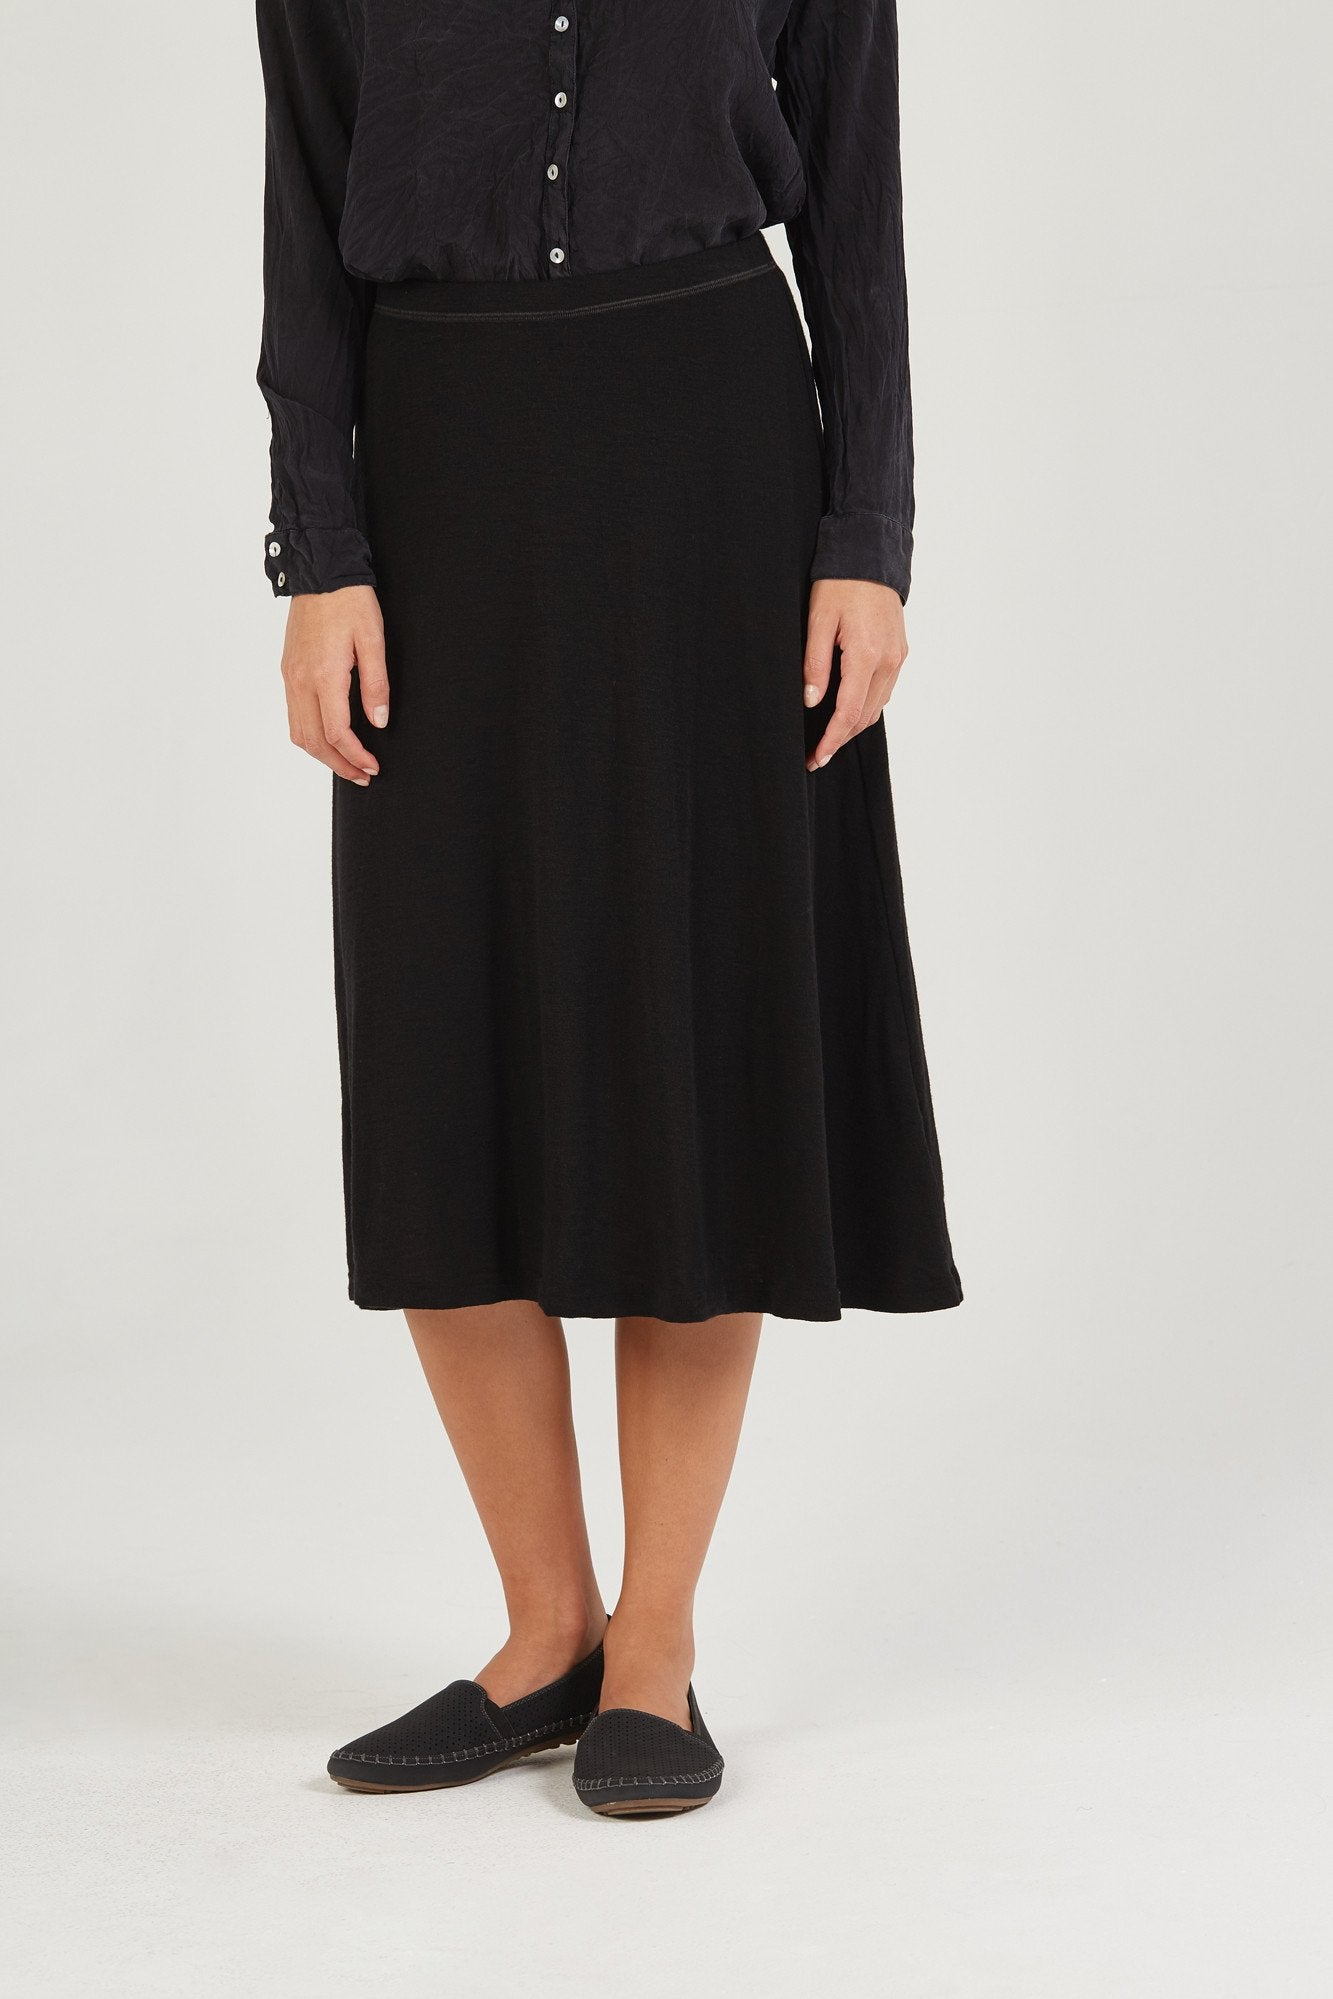 BOWIE SKIRT - BLACK